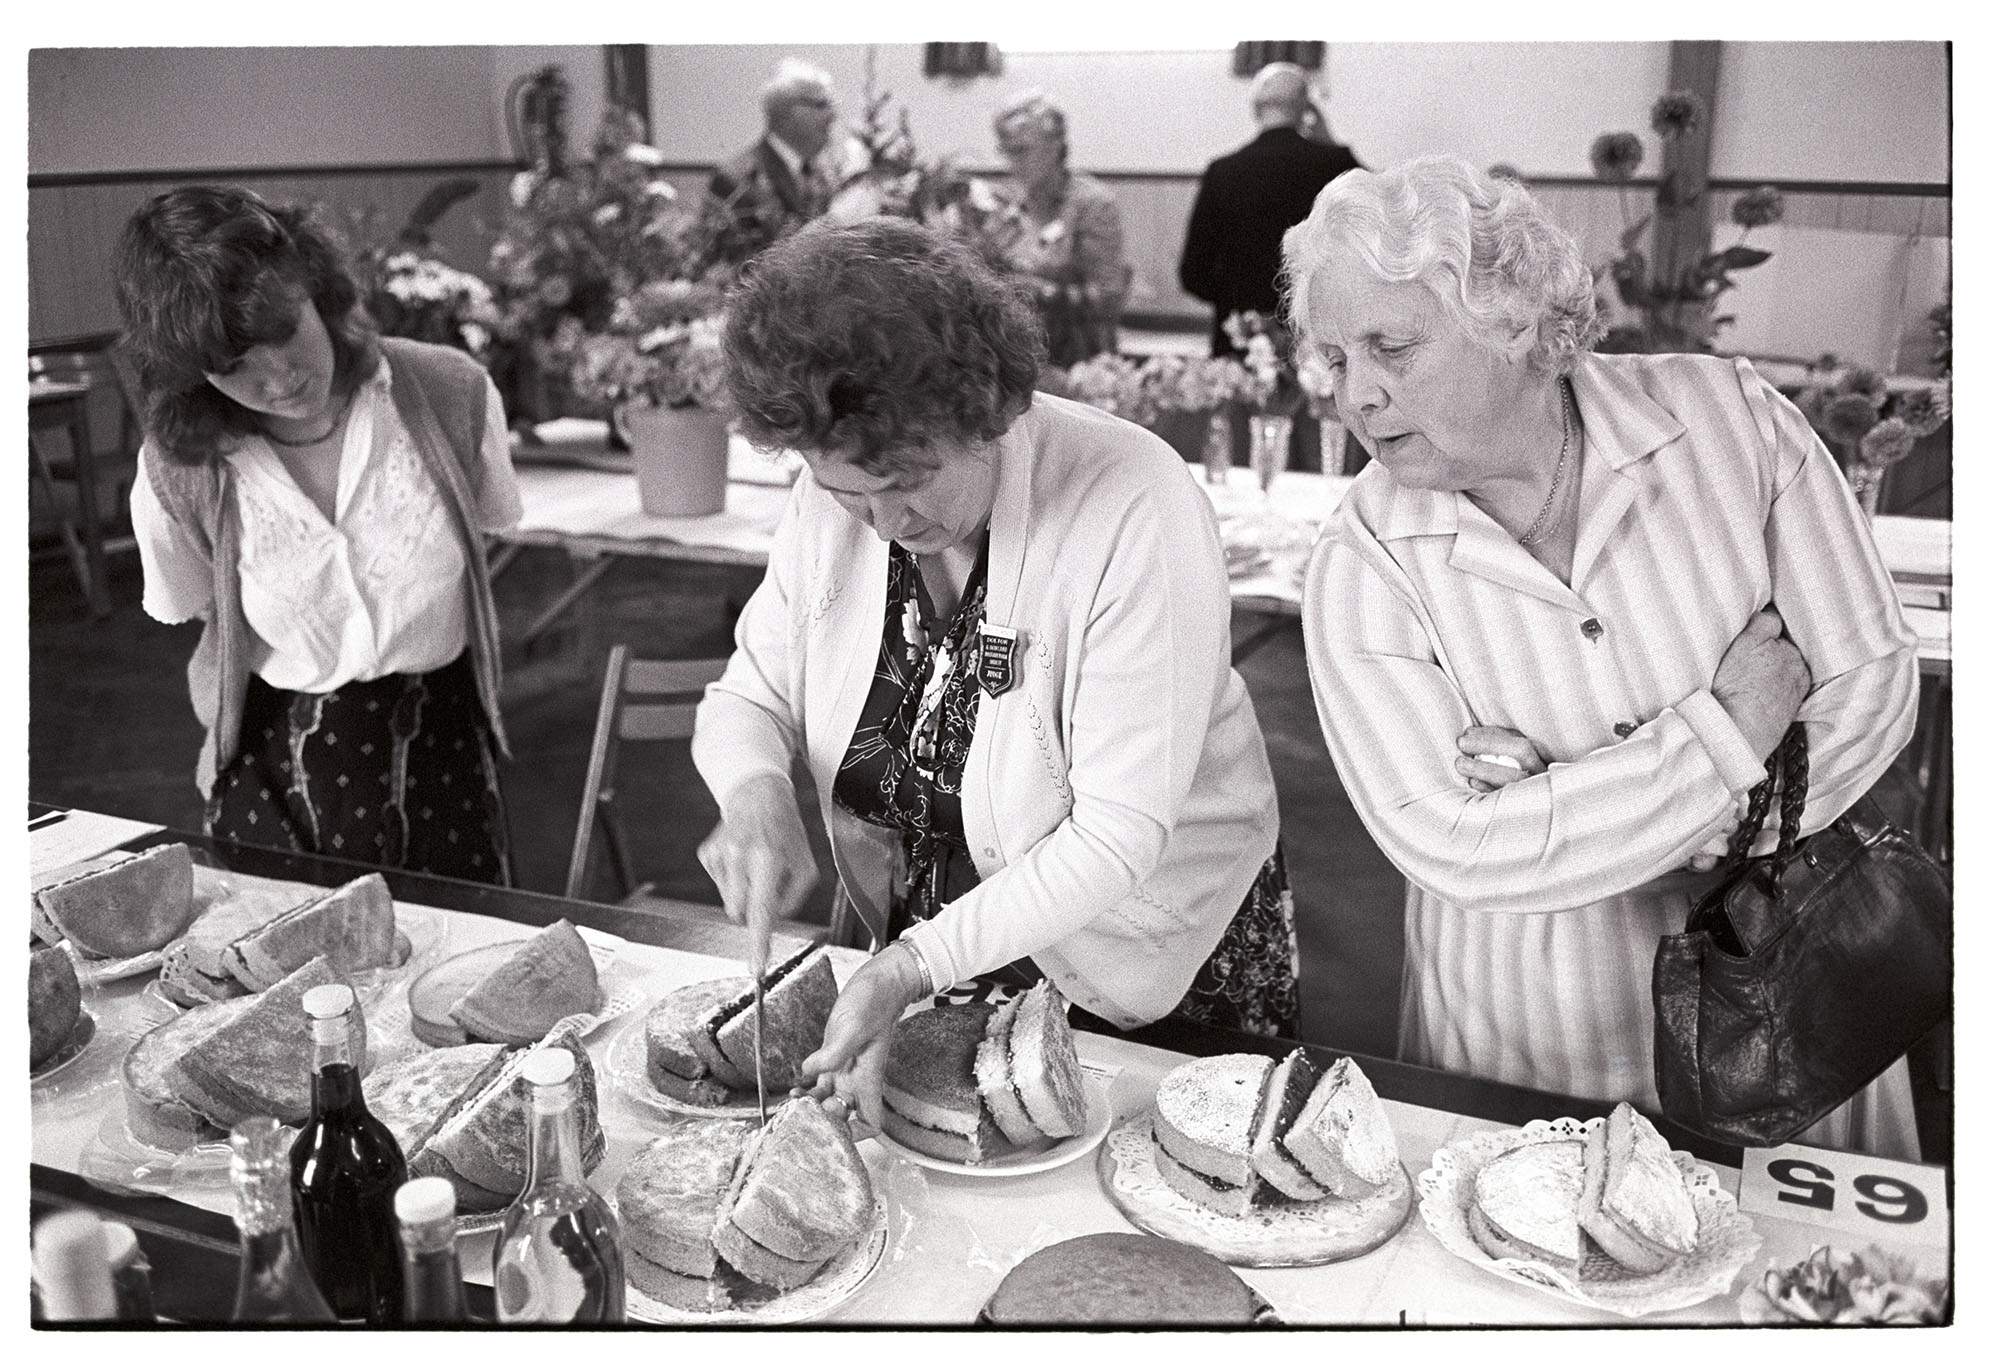 Woman judge. Judging cakes at village Flower Show.<br /> [Mary Turner judging cakes at the Dolton Flower Show in Dolton Village Hall, with her daughter Pip Turner and another woman watching her.]